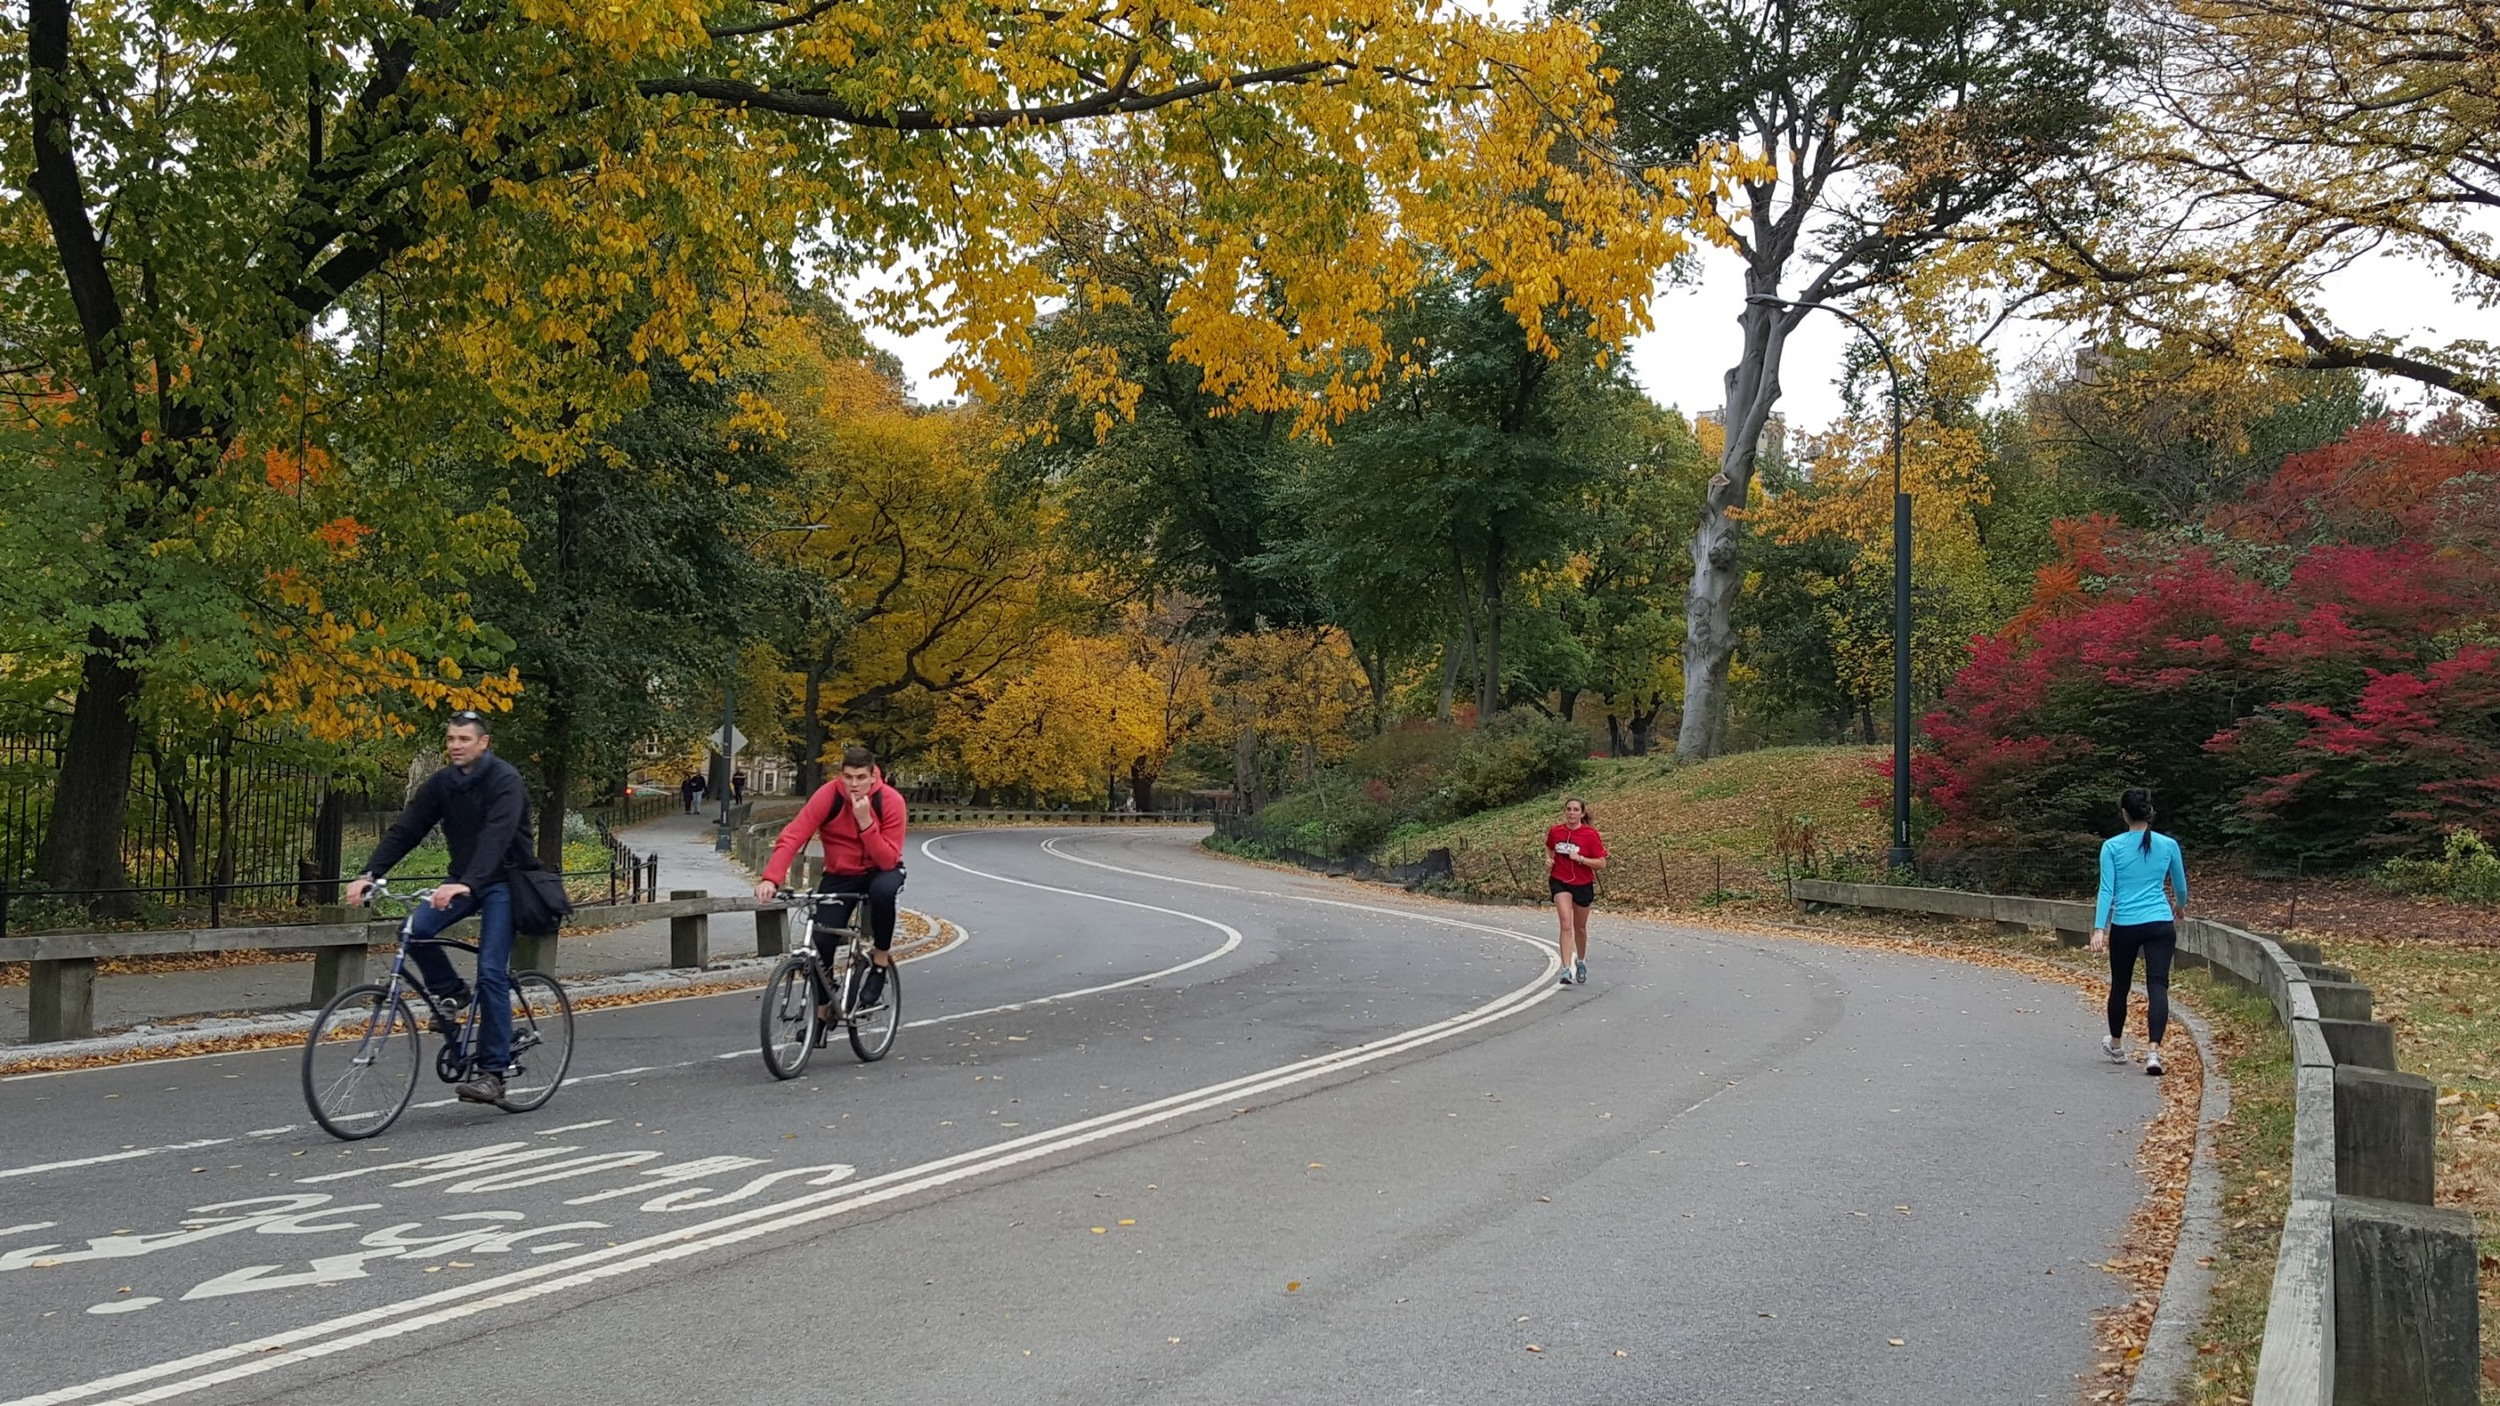 A cycling and jogging road in Central Park, New York City.